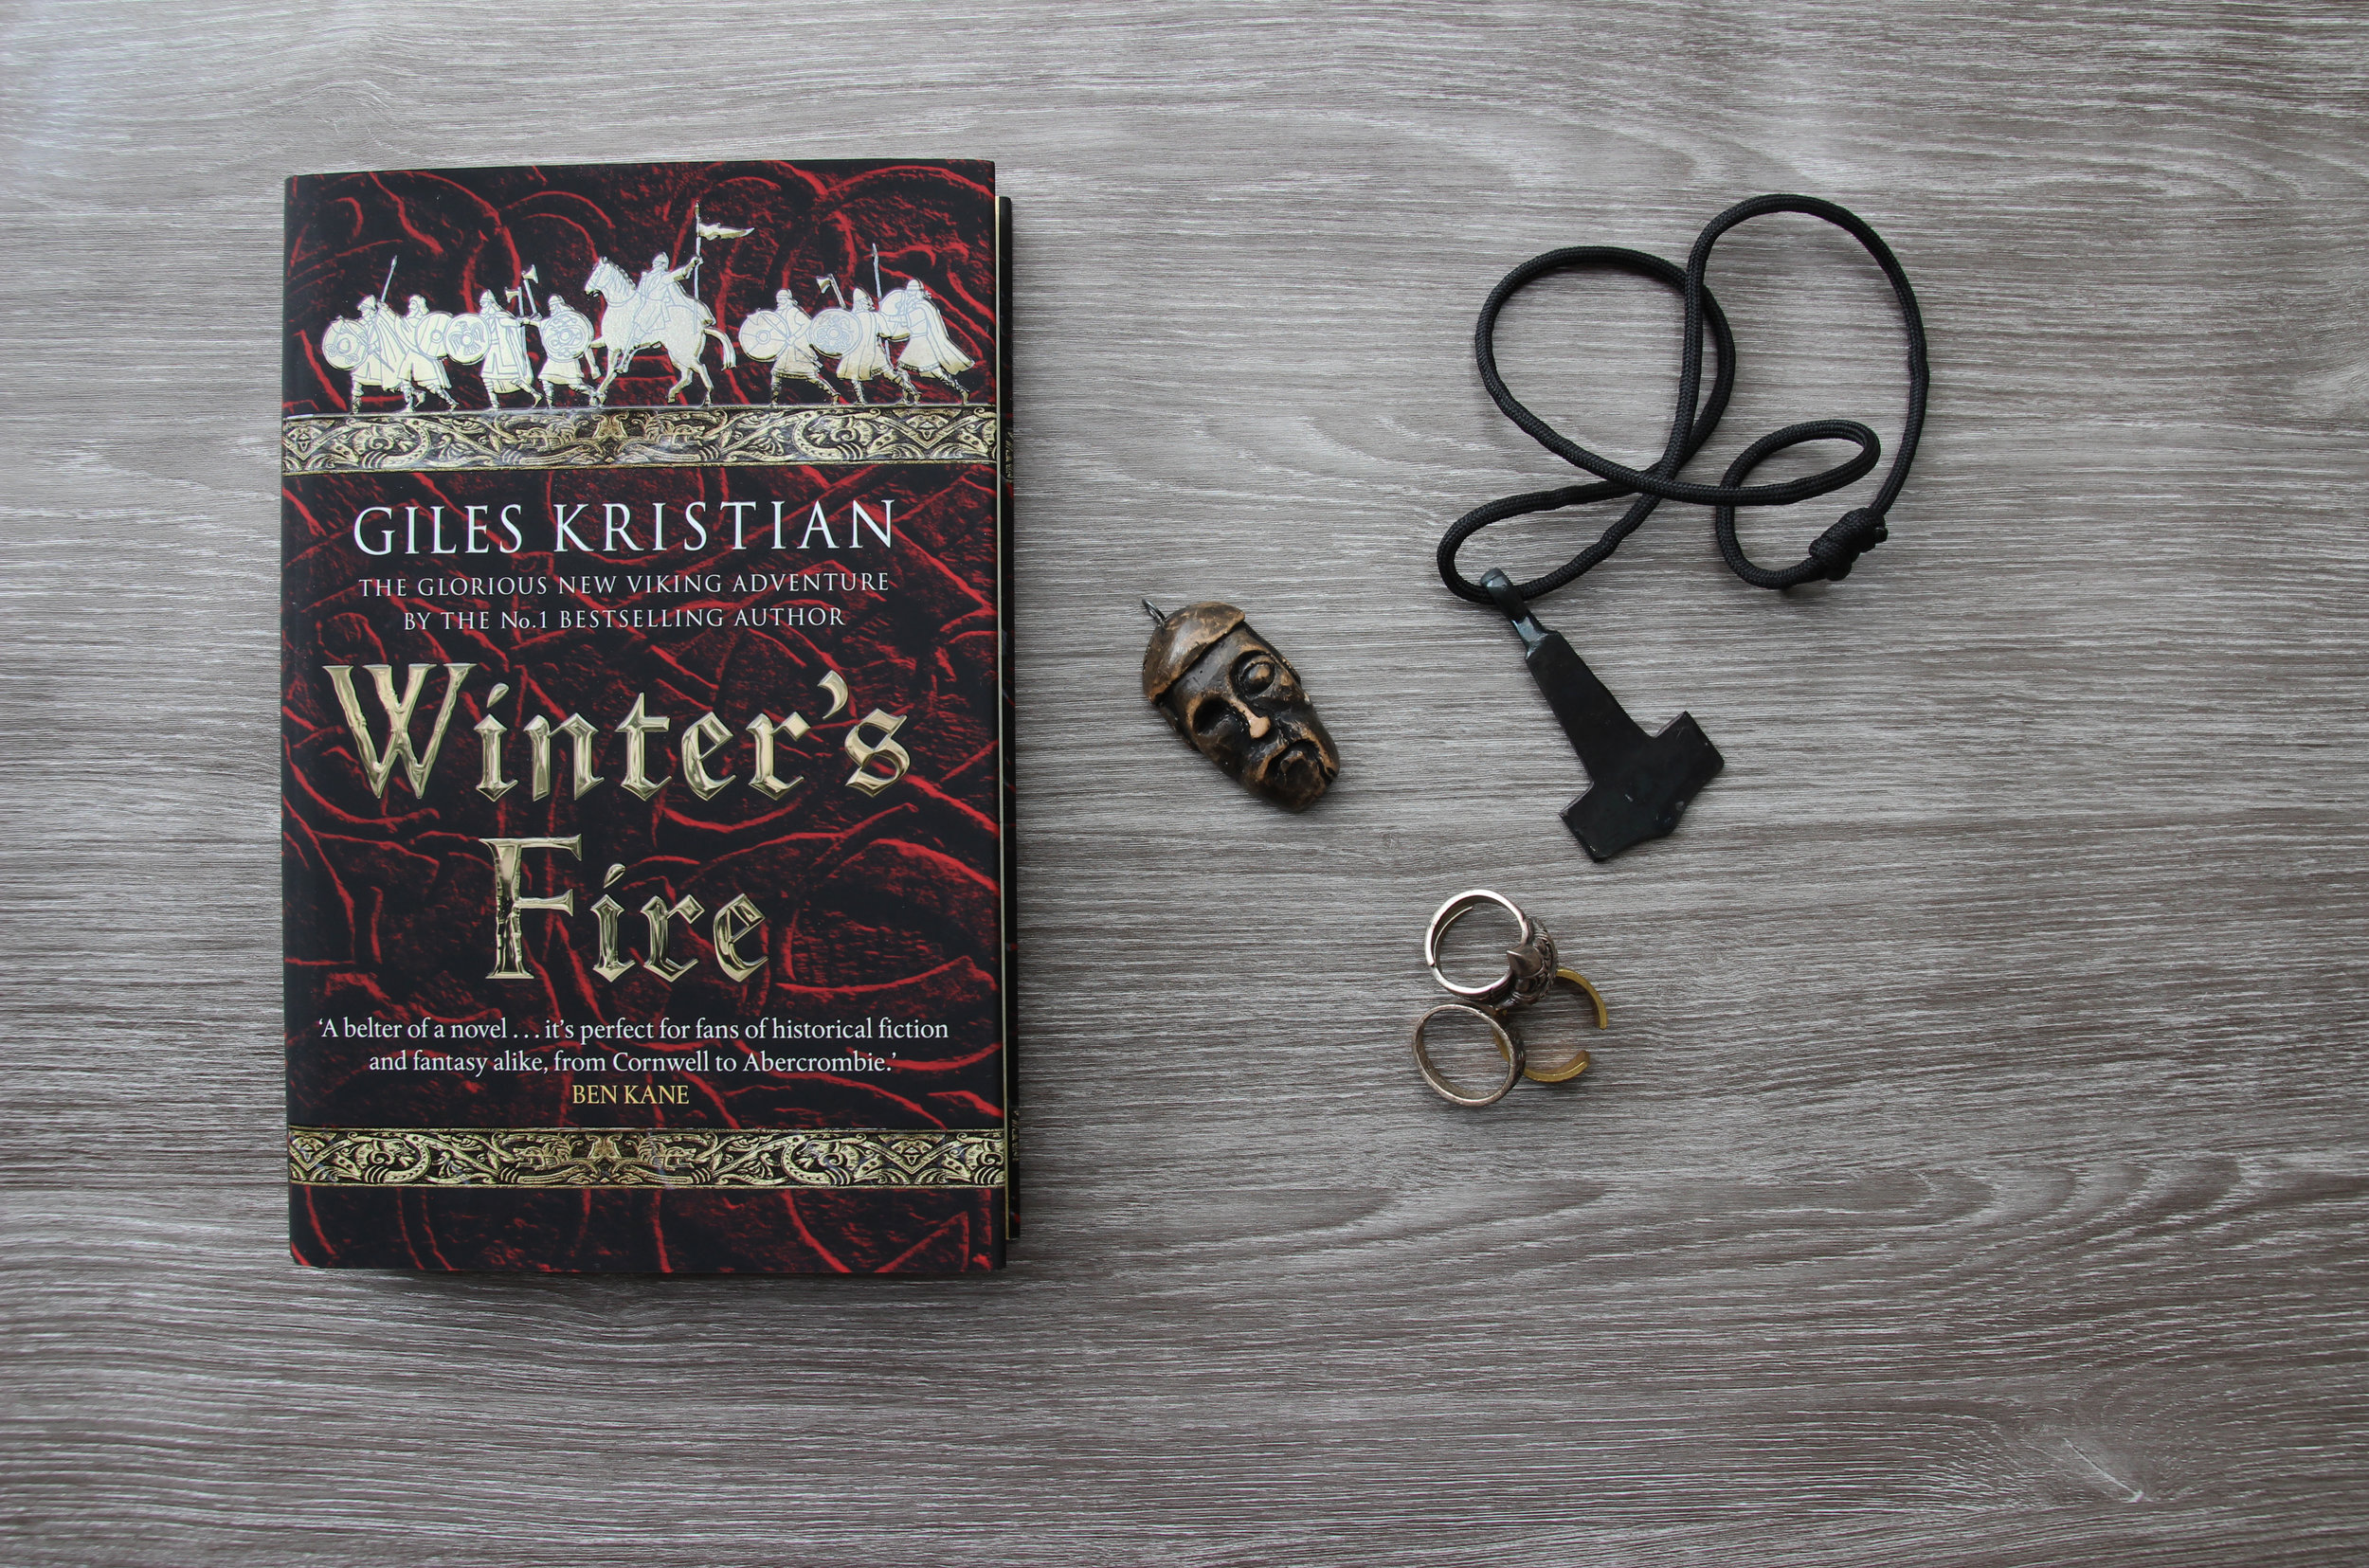 Winter's Fire by historic author Giles Kristian